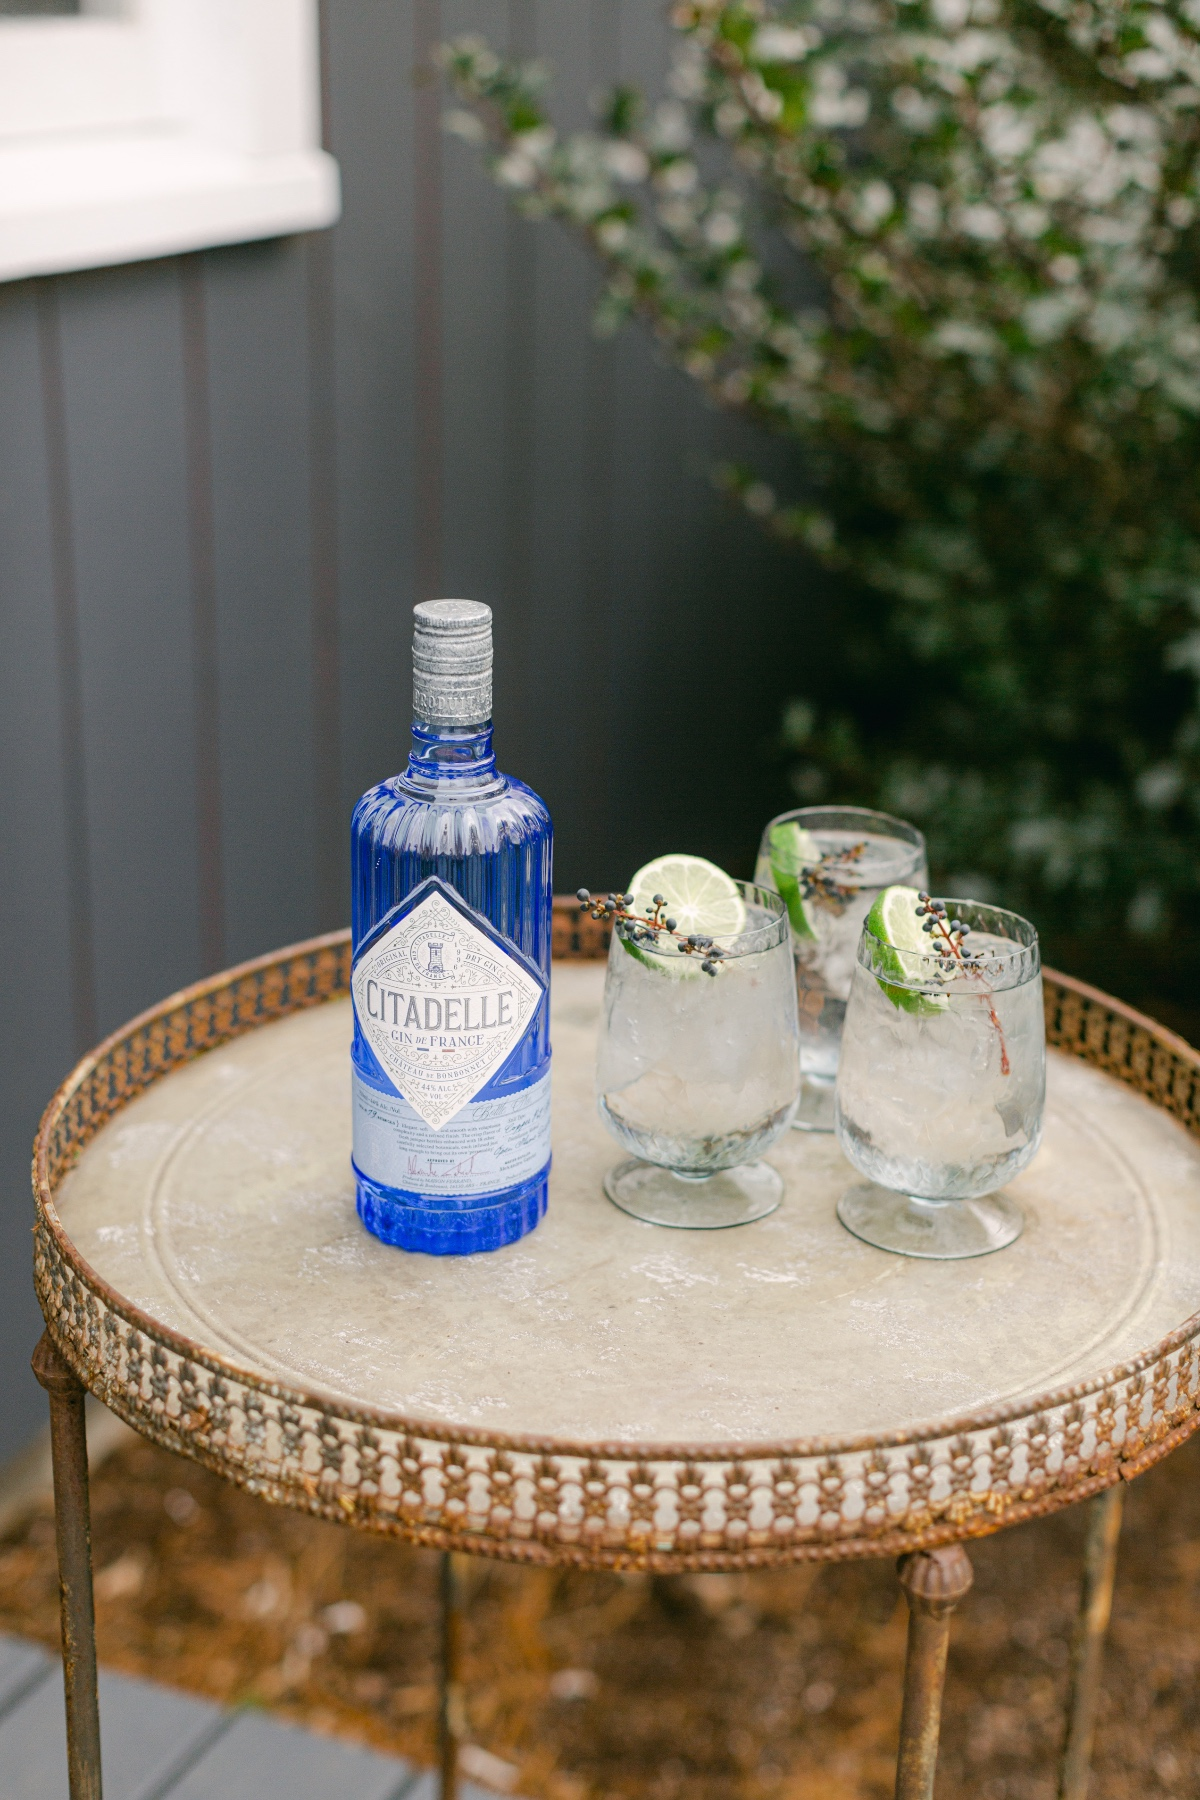 Signature wedding cocktail using Citadelle Gin